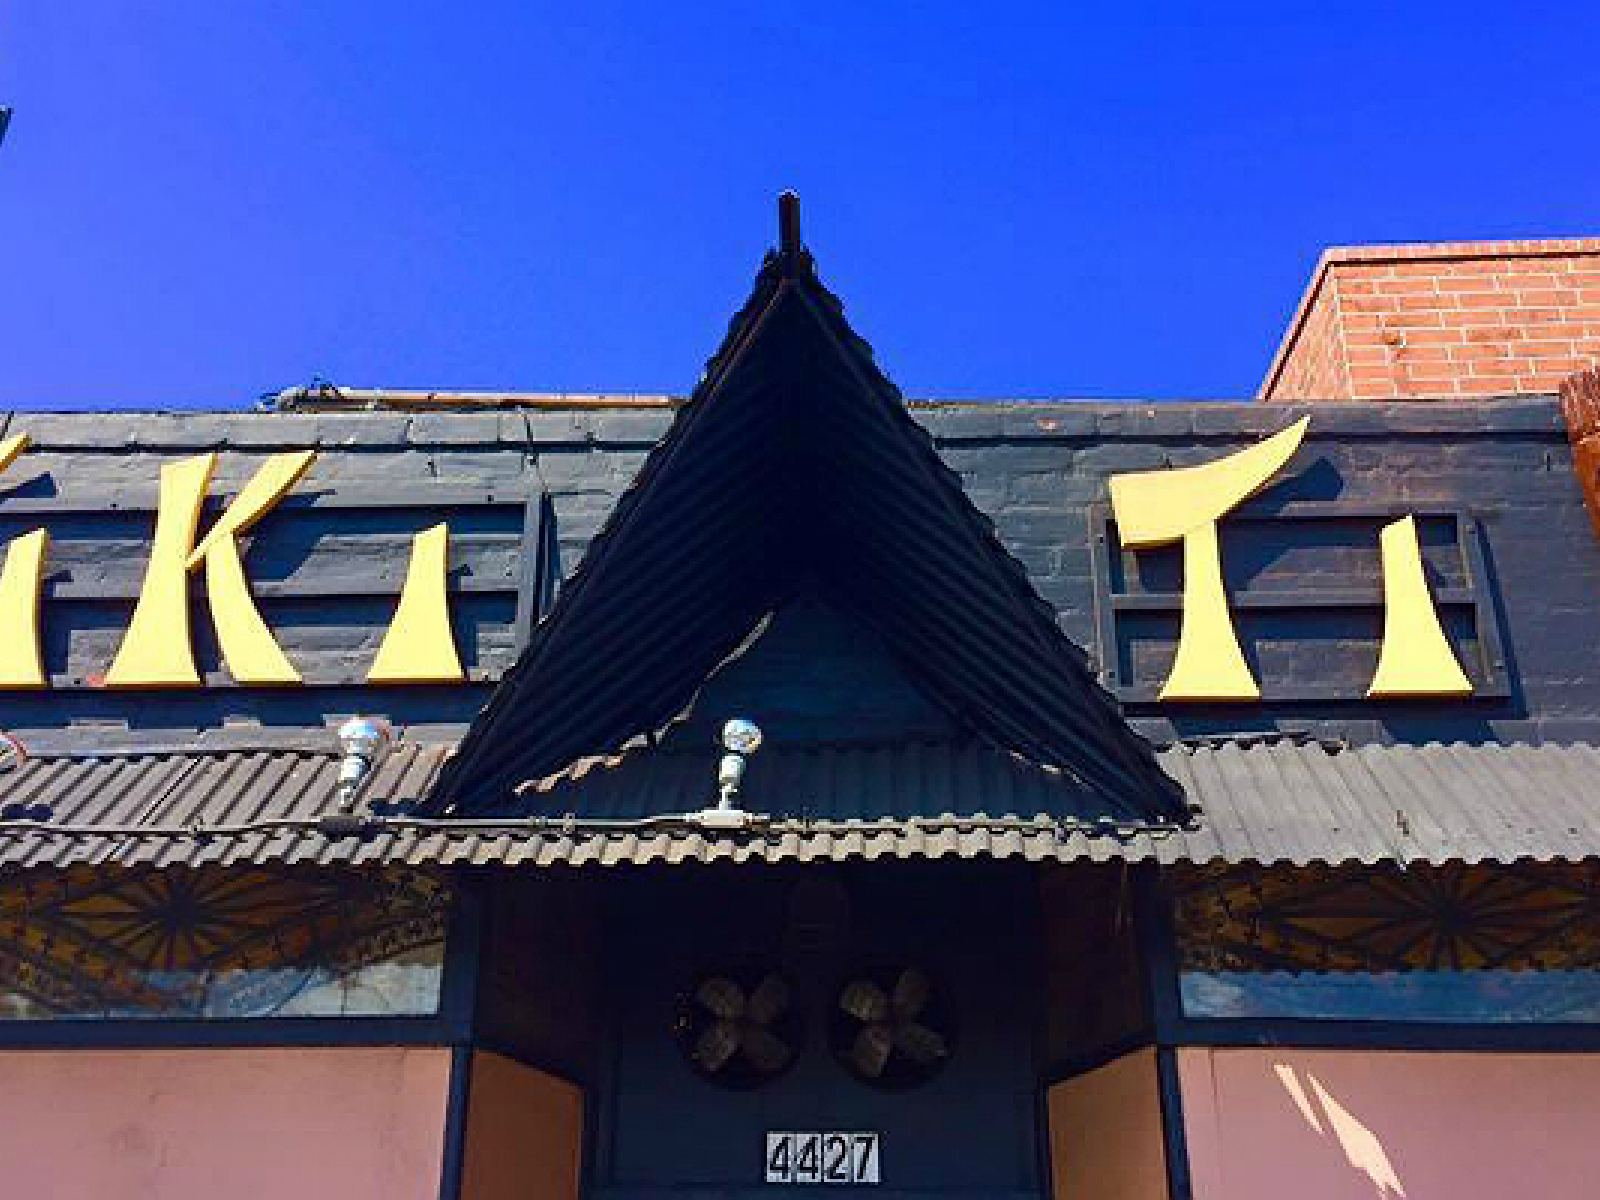 Main image for article titled Tiki-Ti: The Story of an L.A. Icon